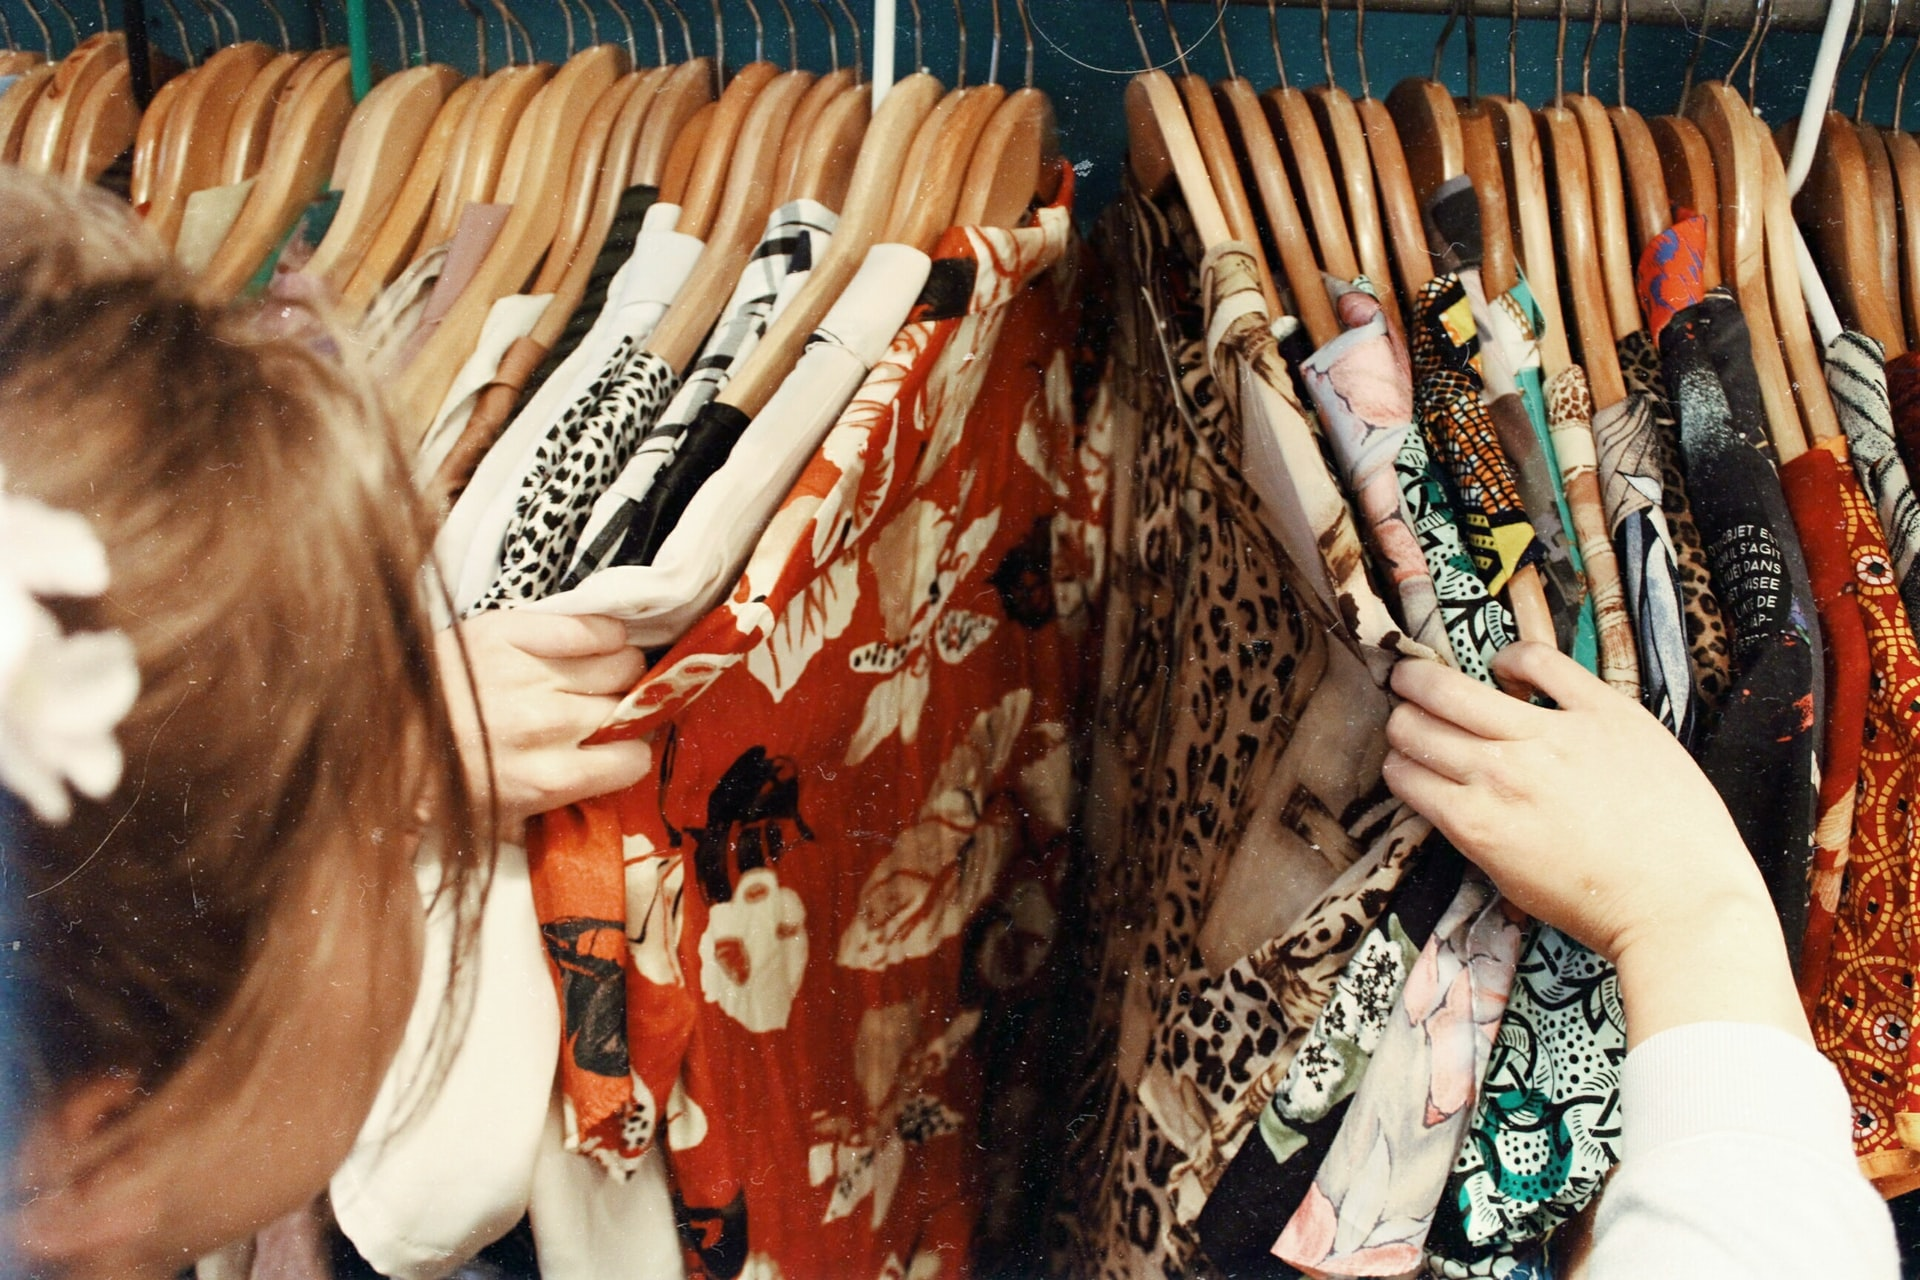 WHAT TO DO IF YOUR TEEN IS CAUGHT SHOPLIFTING